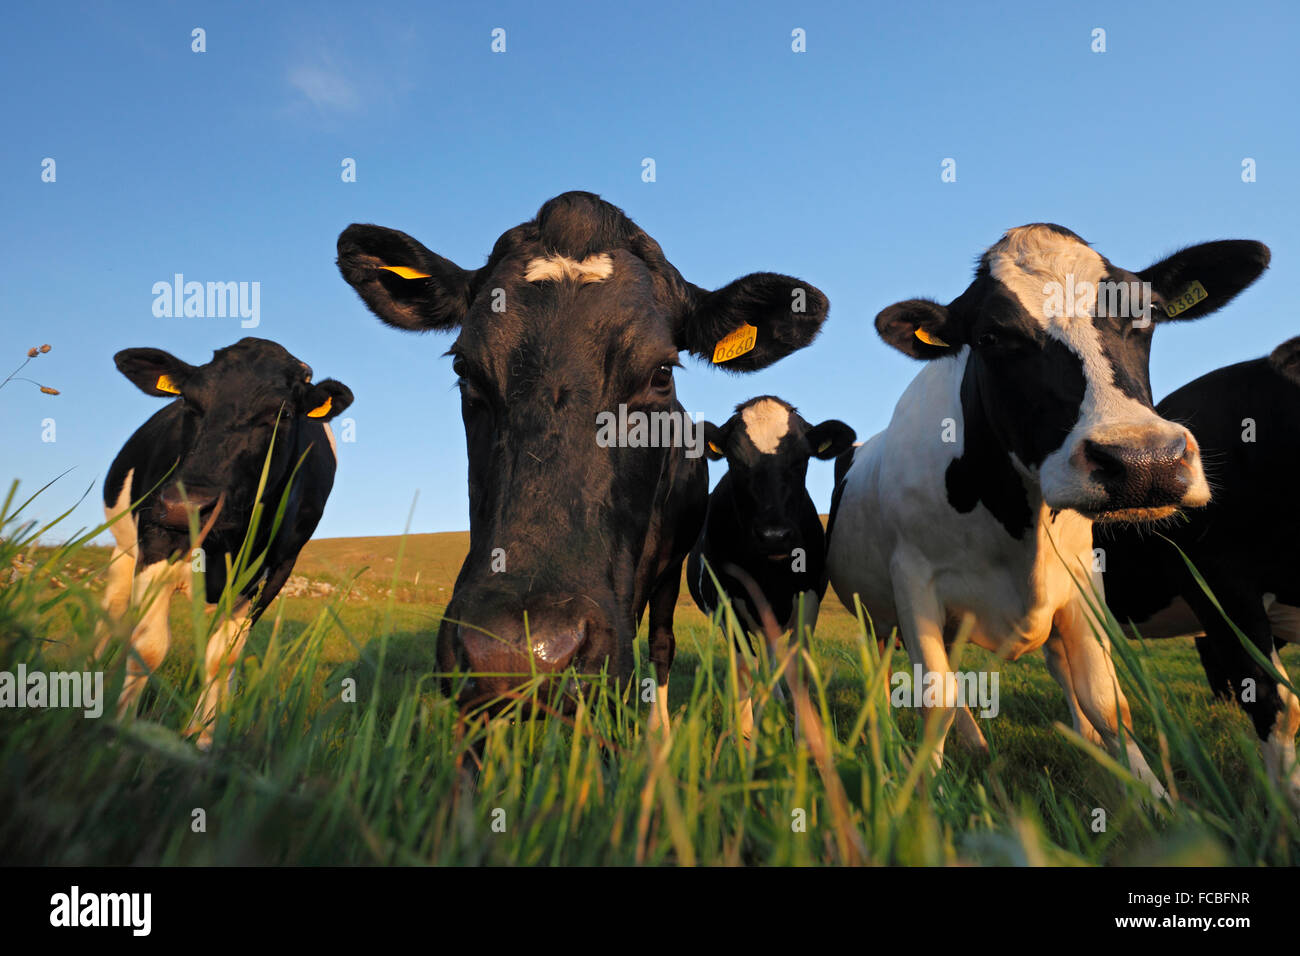 Holstein Cows - Herd of black and white patched cows (Bos taurus) - Stock Image